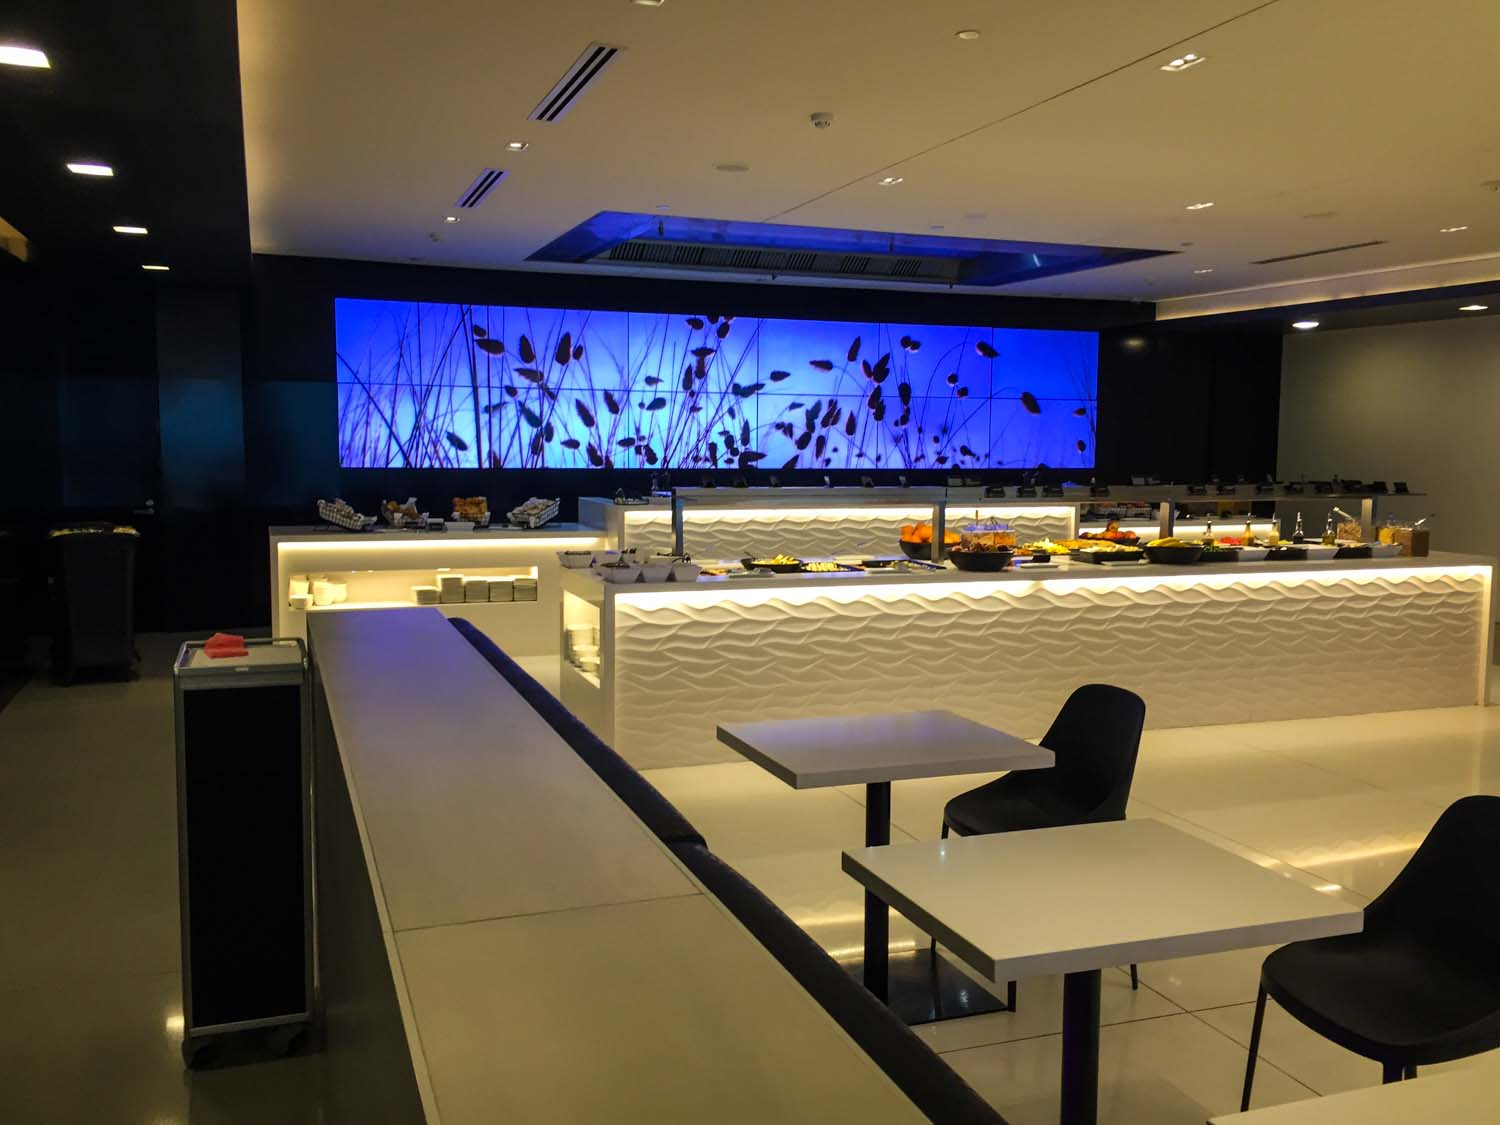 The buffet table at the Air New Zealand International Lounge in Auckland